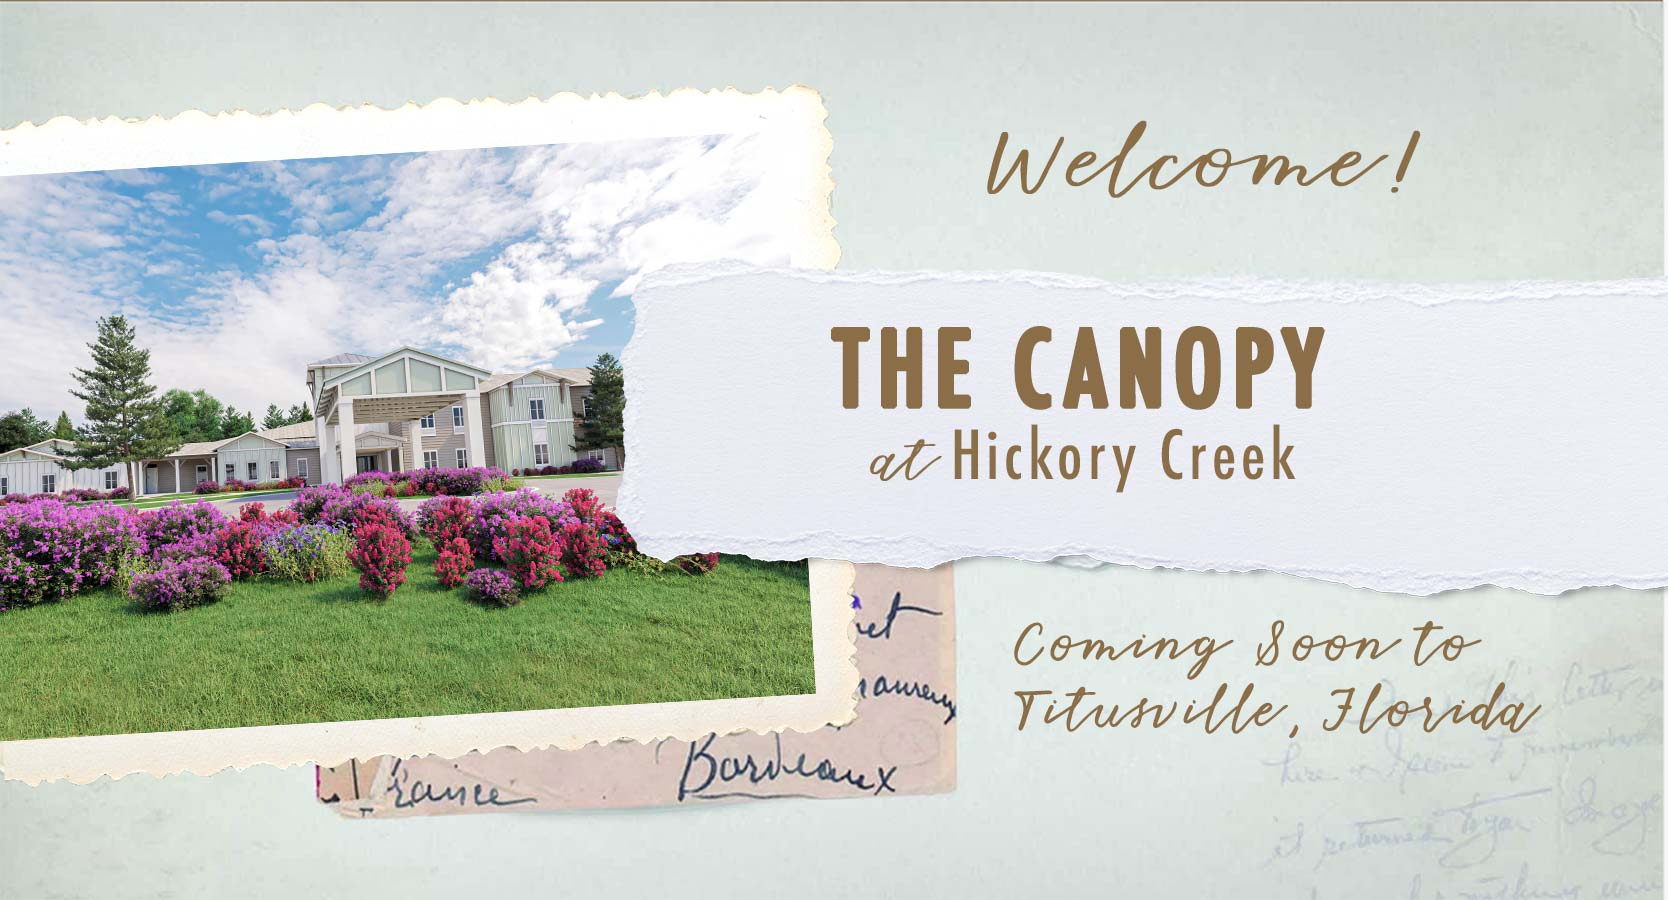 The Canopy at Hickory Creek: Coming Soon to Titusville Florida